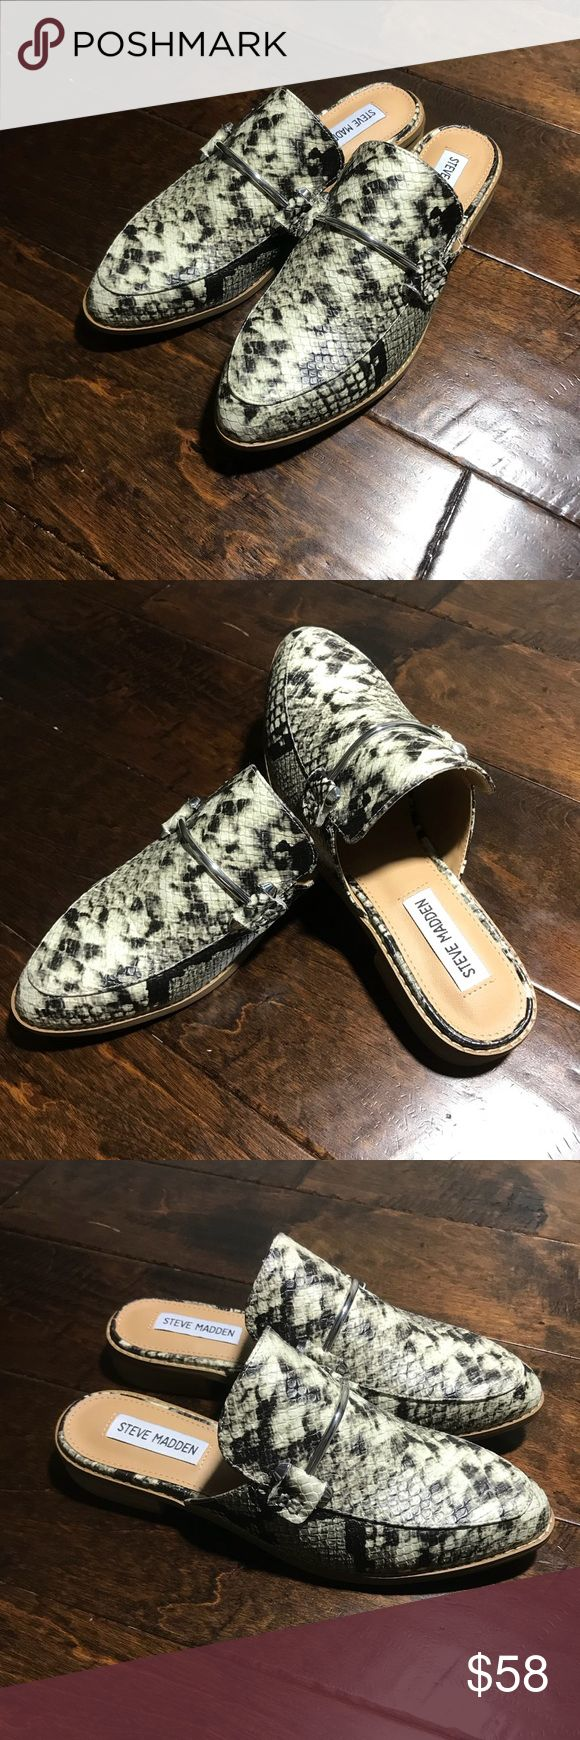 Steve Madden Laura Women Mules Loafers Brand new women Steve Madden Laaura Mule Loafer Snake Print Pointed Toe Shoes Size: 6.5M Smoke/Pet free home Steve Madden Shoes Mules & Clogs